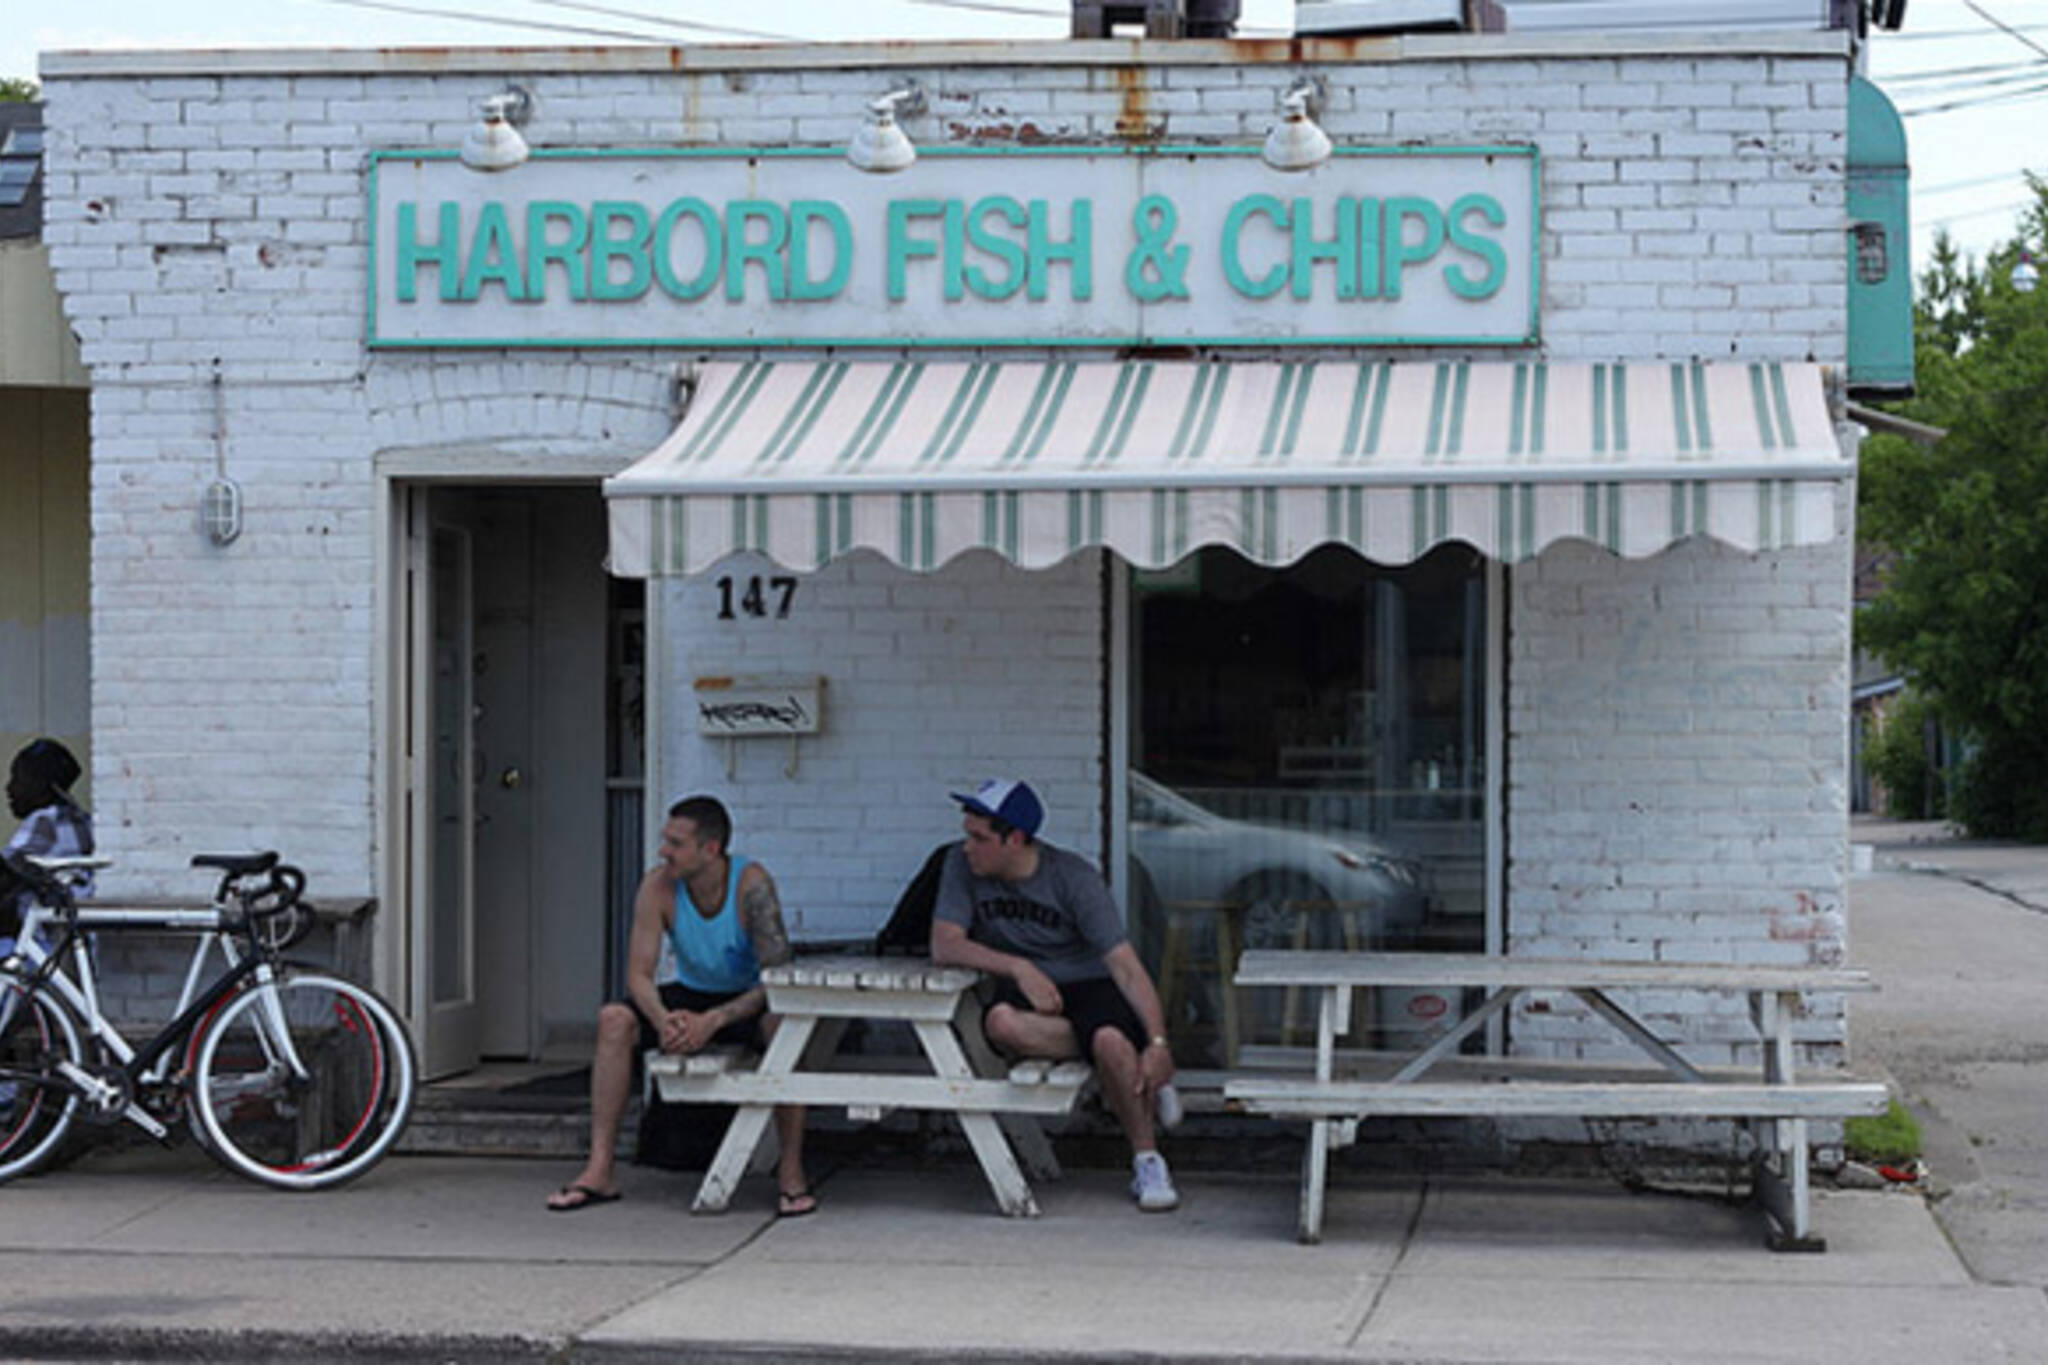 Harbord, Fish, Chips